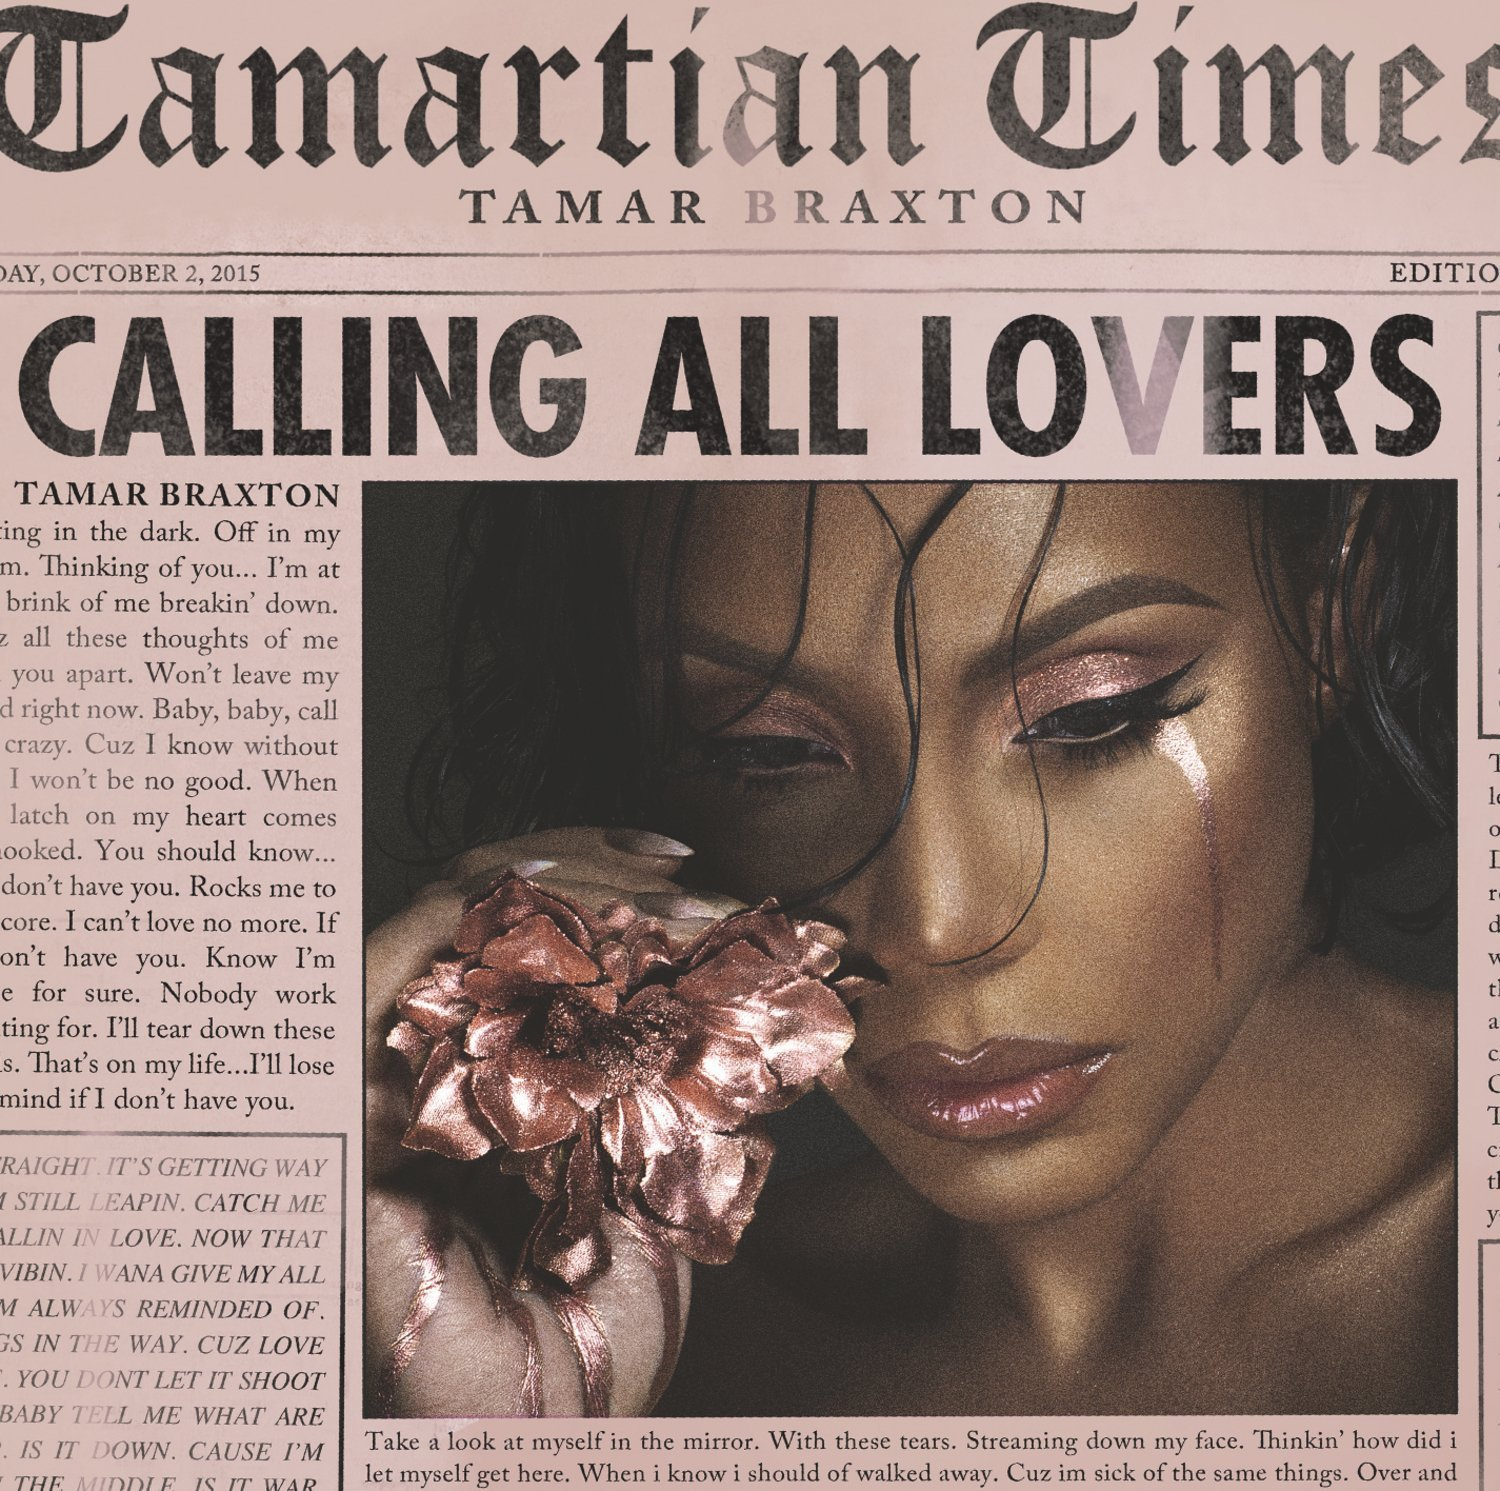 Tamar Braxton, 'Calling All Lovers' (Short Take Review)